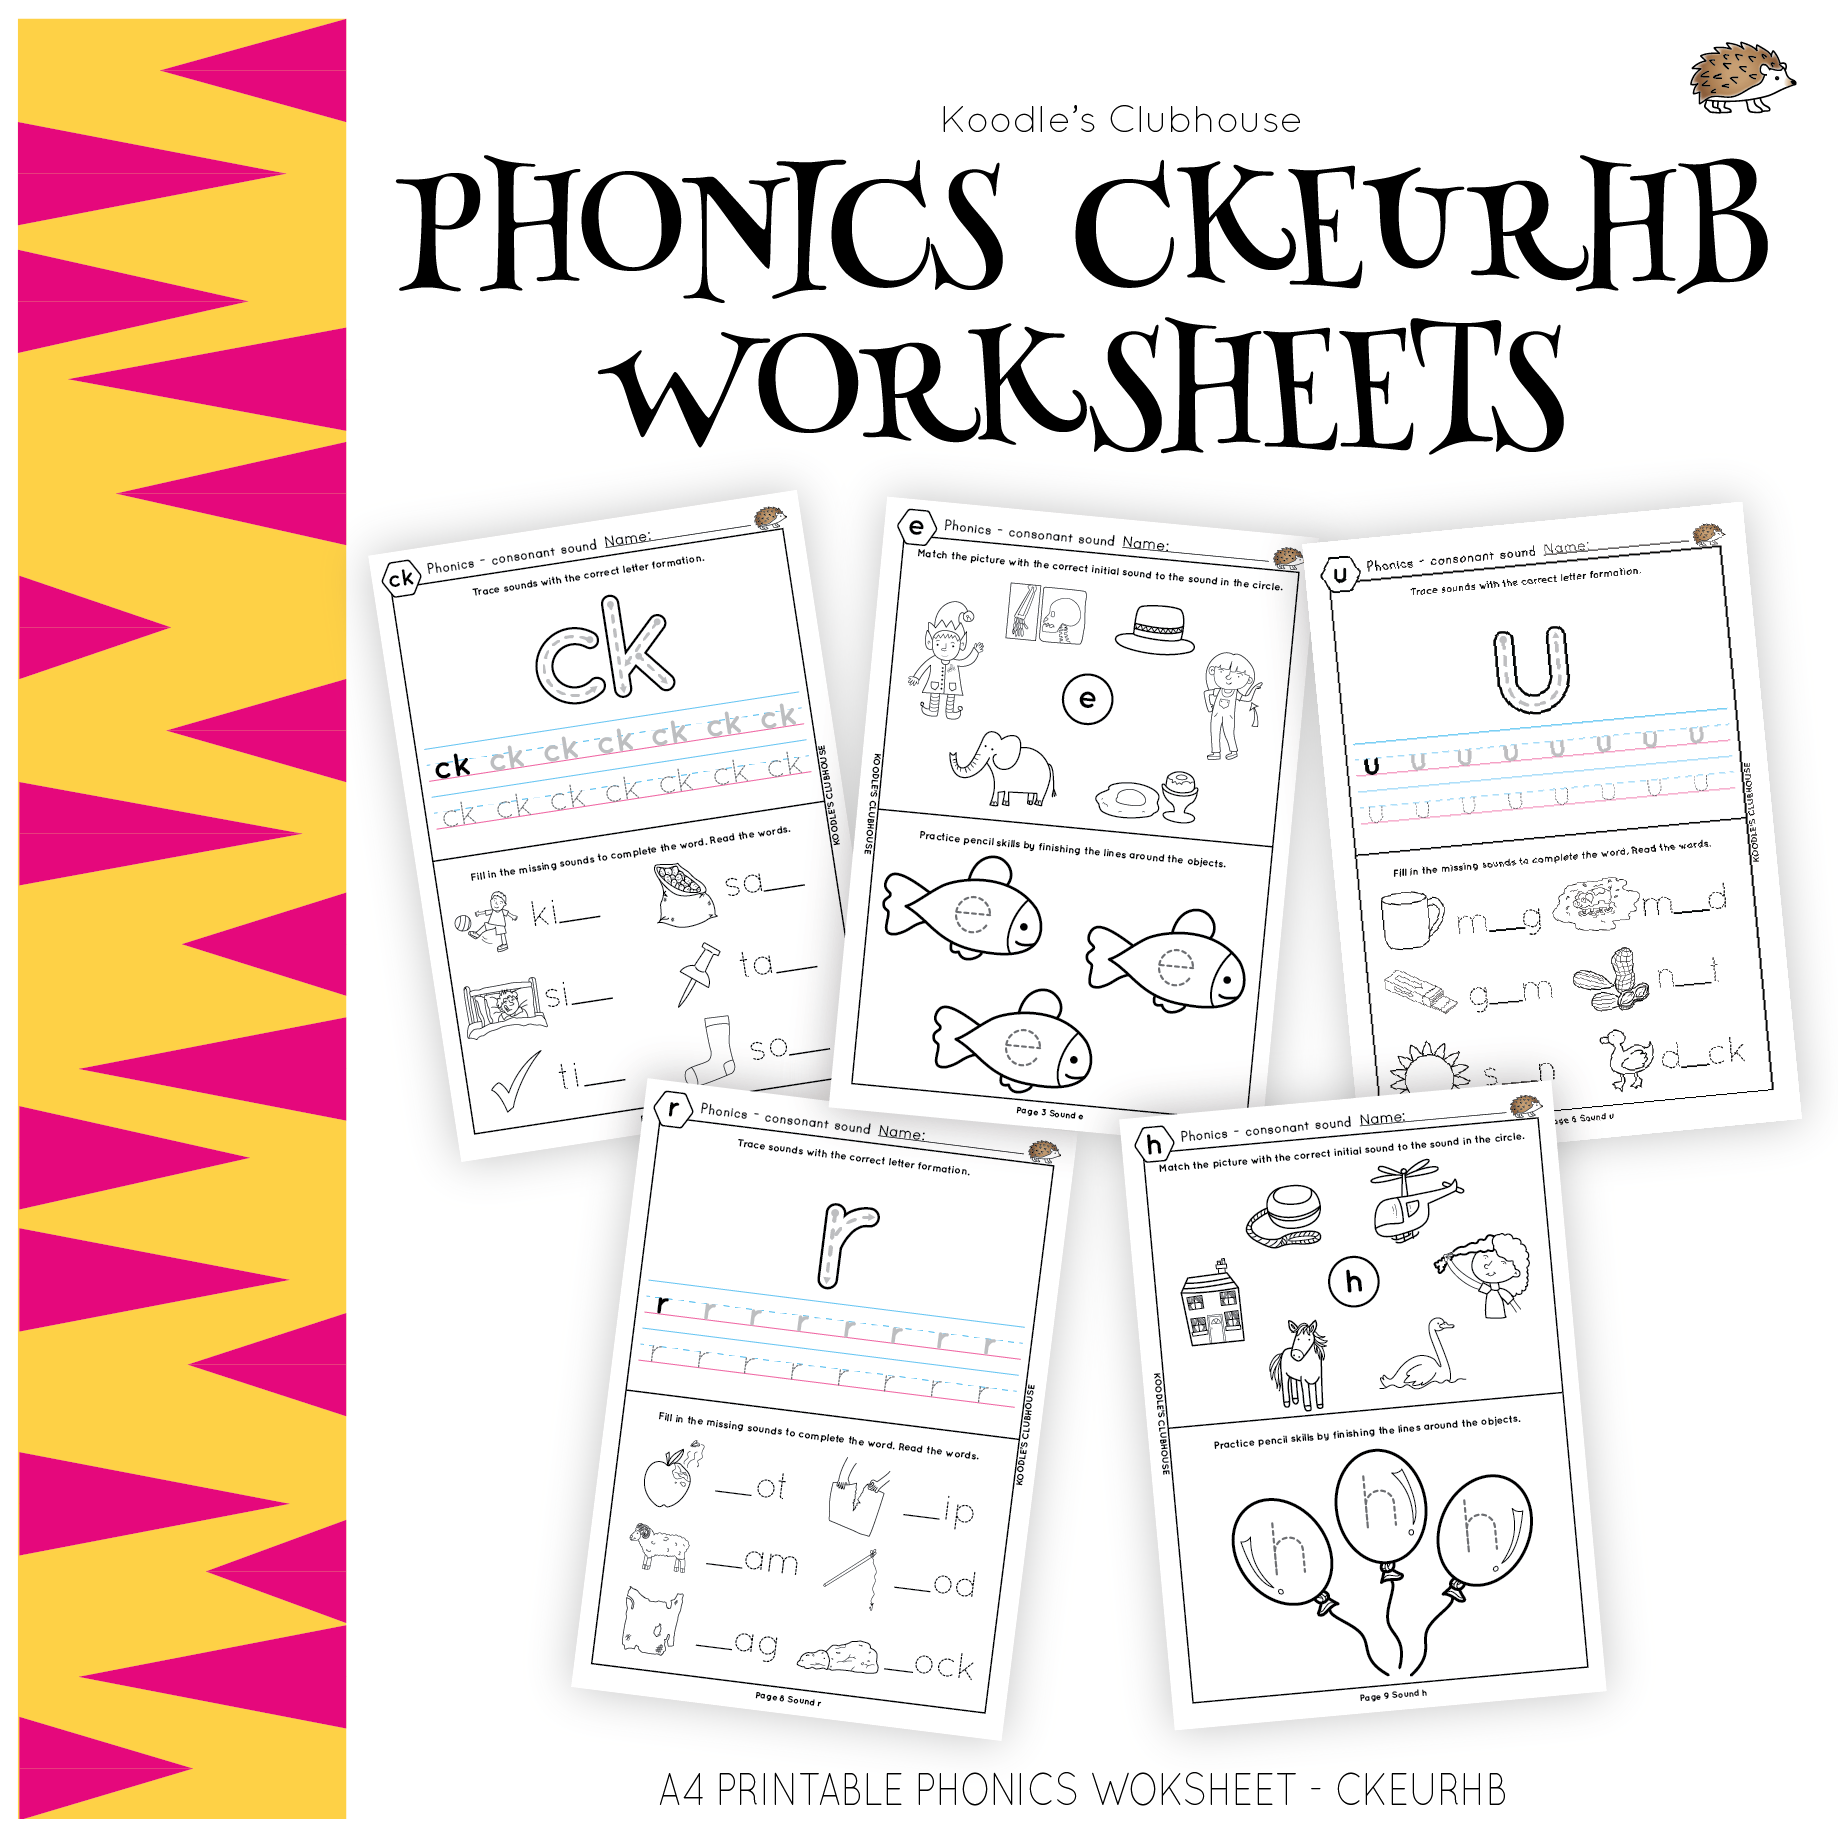 Phonics Ckeurhb Worksheets From Koodle S Clubhouse